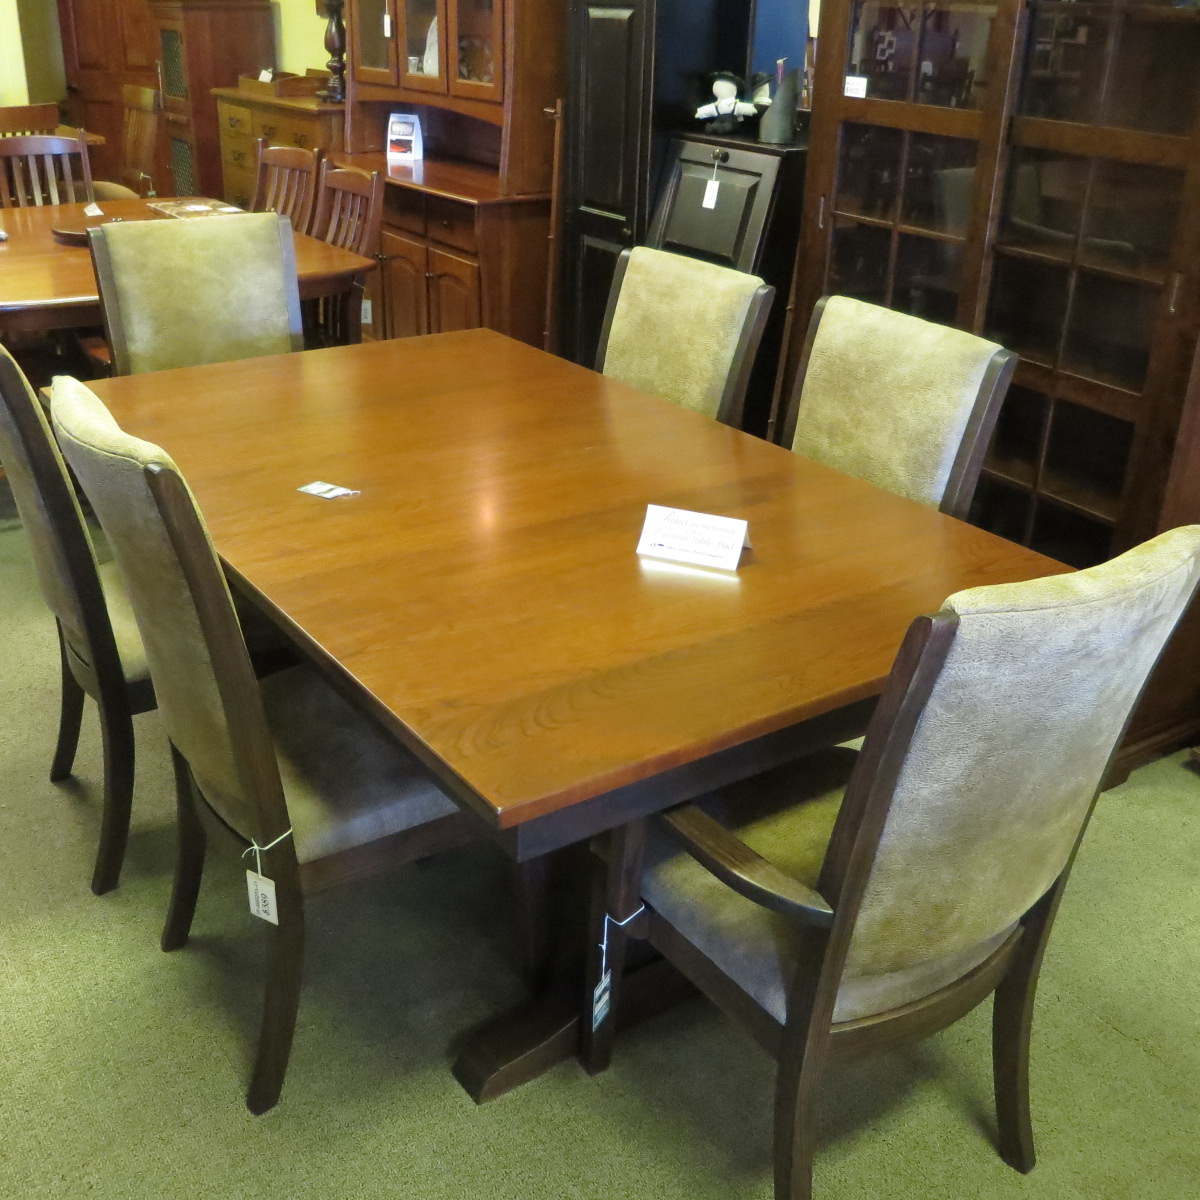 Trestle base 42 x 72 table with 2 leaves and 6 chairs